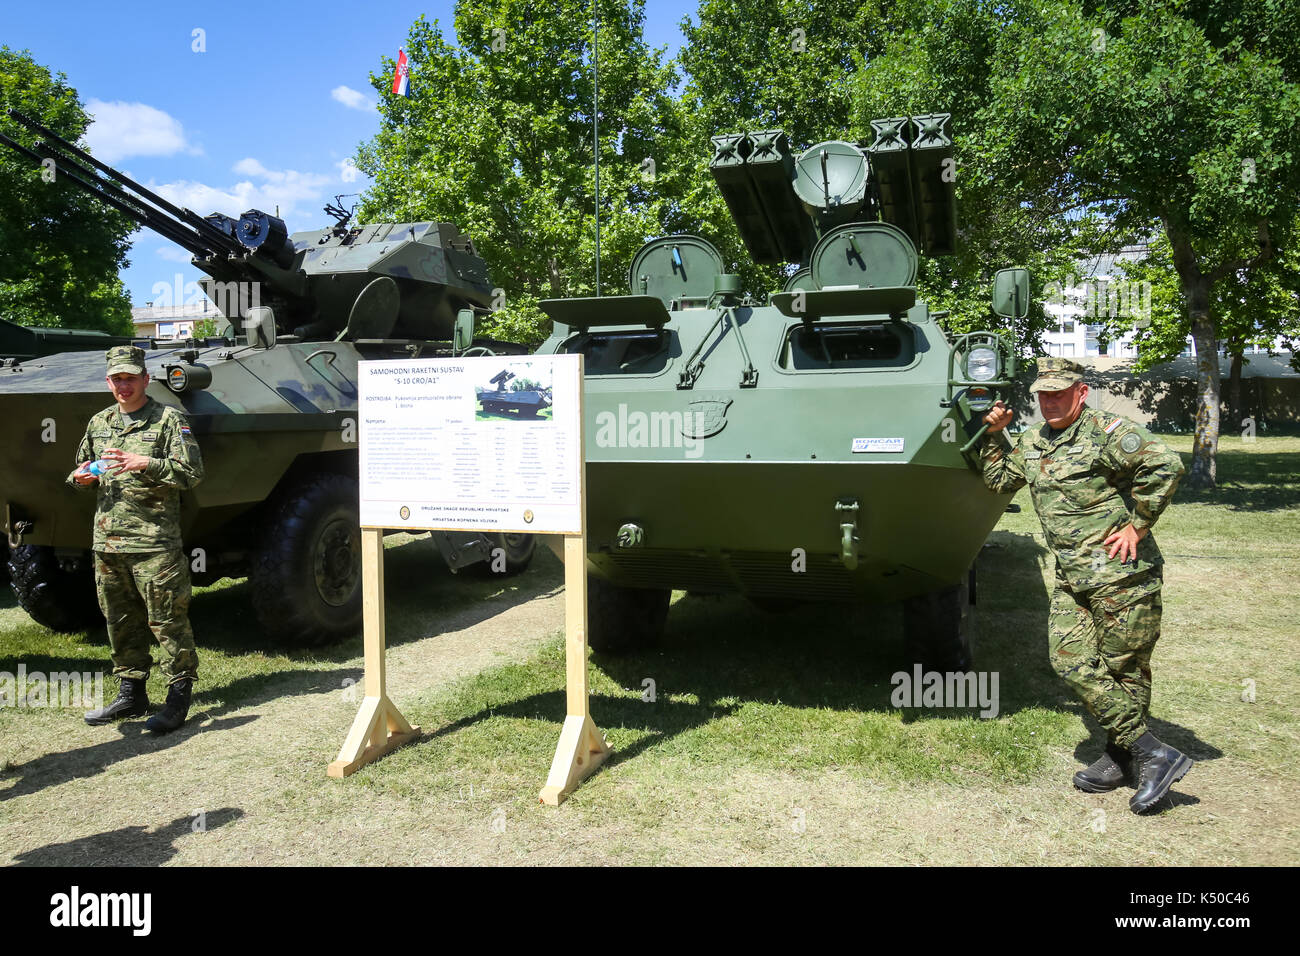 ZAGREB, CROATIA - MAY 28, 2017 : The soldiers stand by rocket launcher vehicle Strijela 10CROA1 at the 26th anniversary of the formation of the Croati - Stock Image